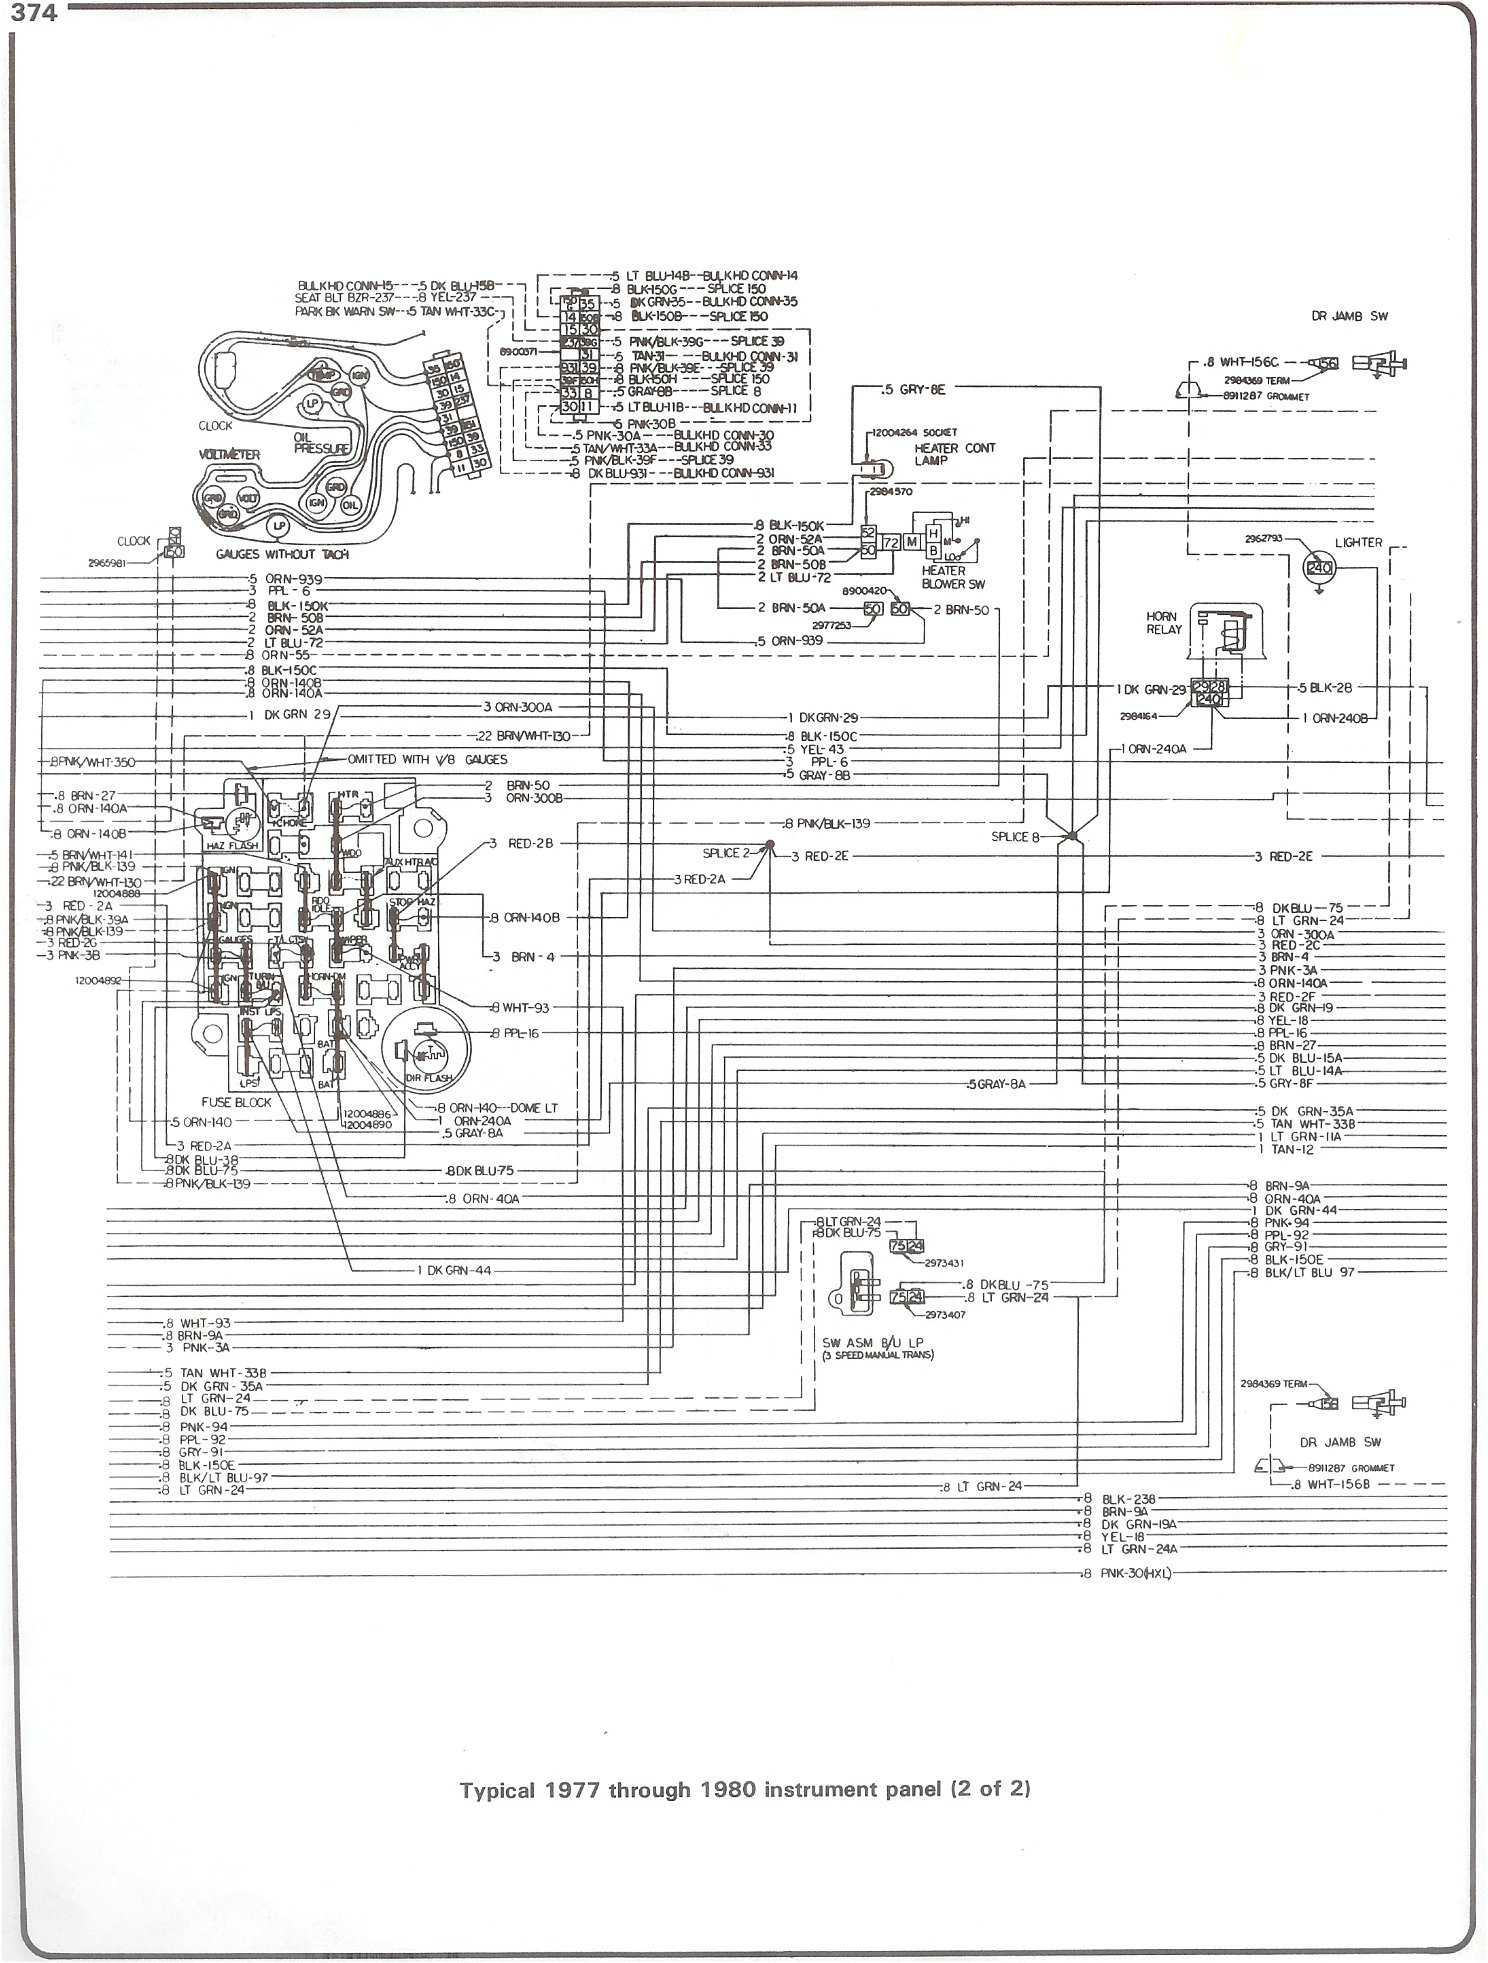 77 chevy wiring diagram complete 73 87 wiring diagrams 77 80 intrument panel page 2